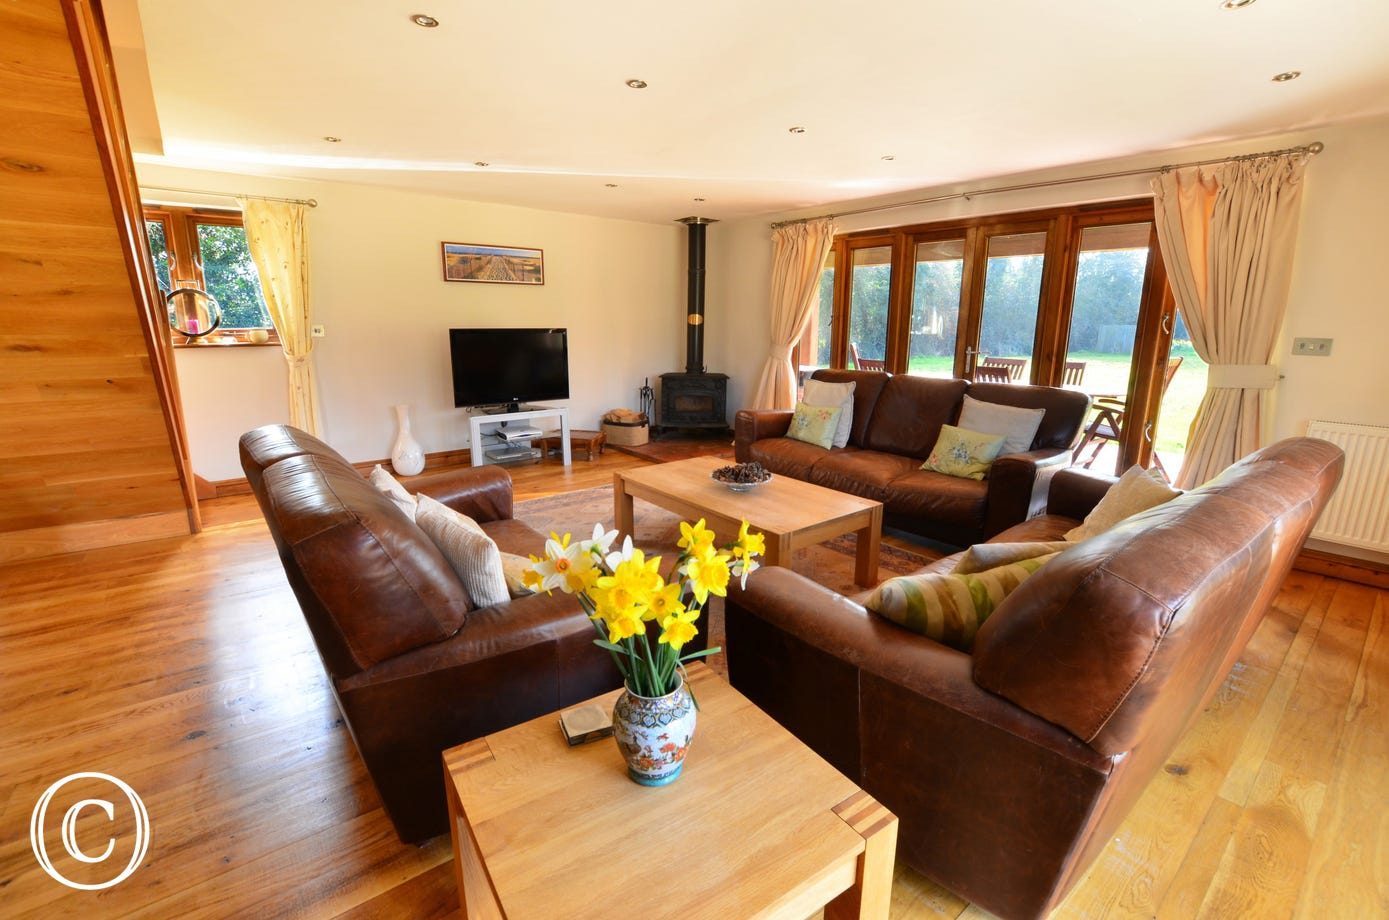 The sitting room is large and spacious with a polished wood floor